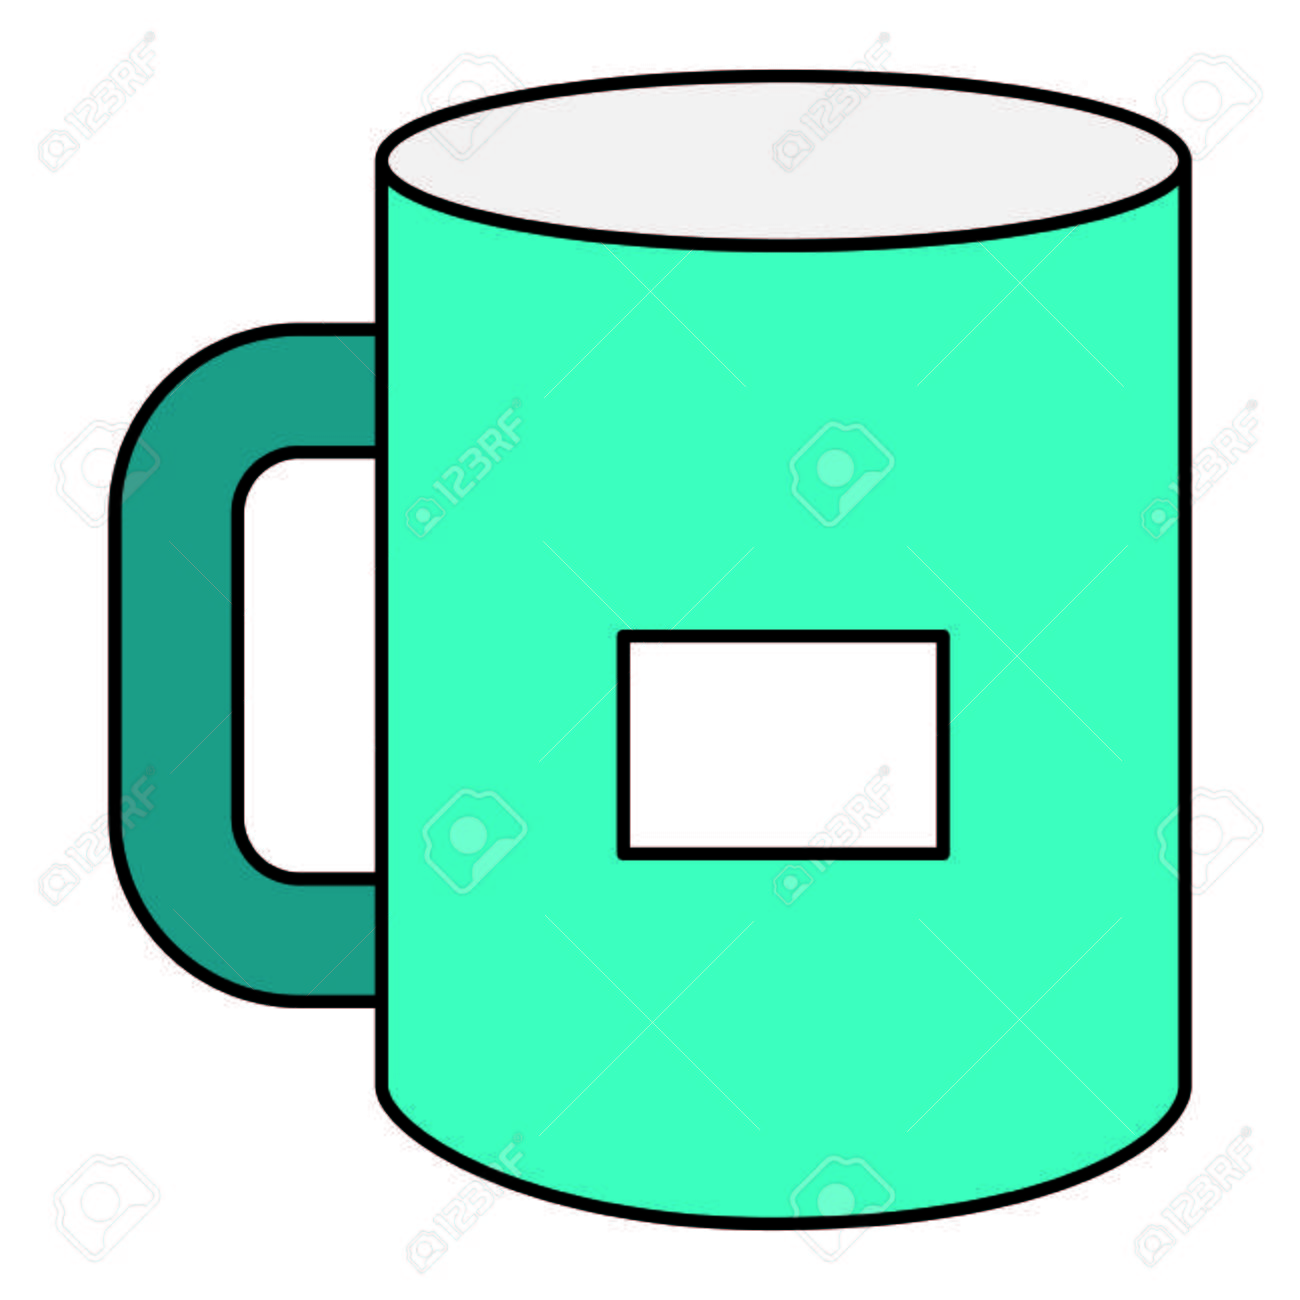 Corporate Company Mug Icon Vector Illustration Design Royalty Free Cliparts Vectors And Stock Illustration Image 99236948